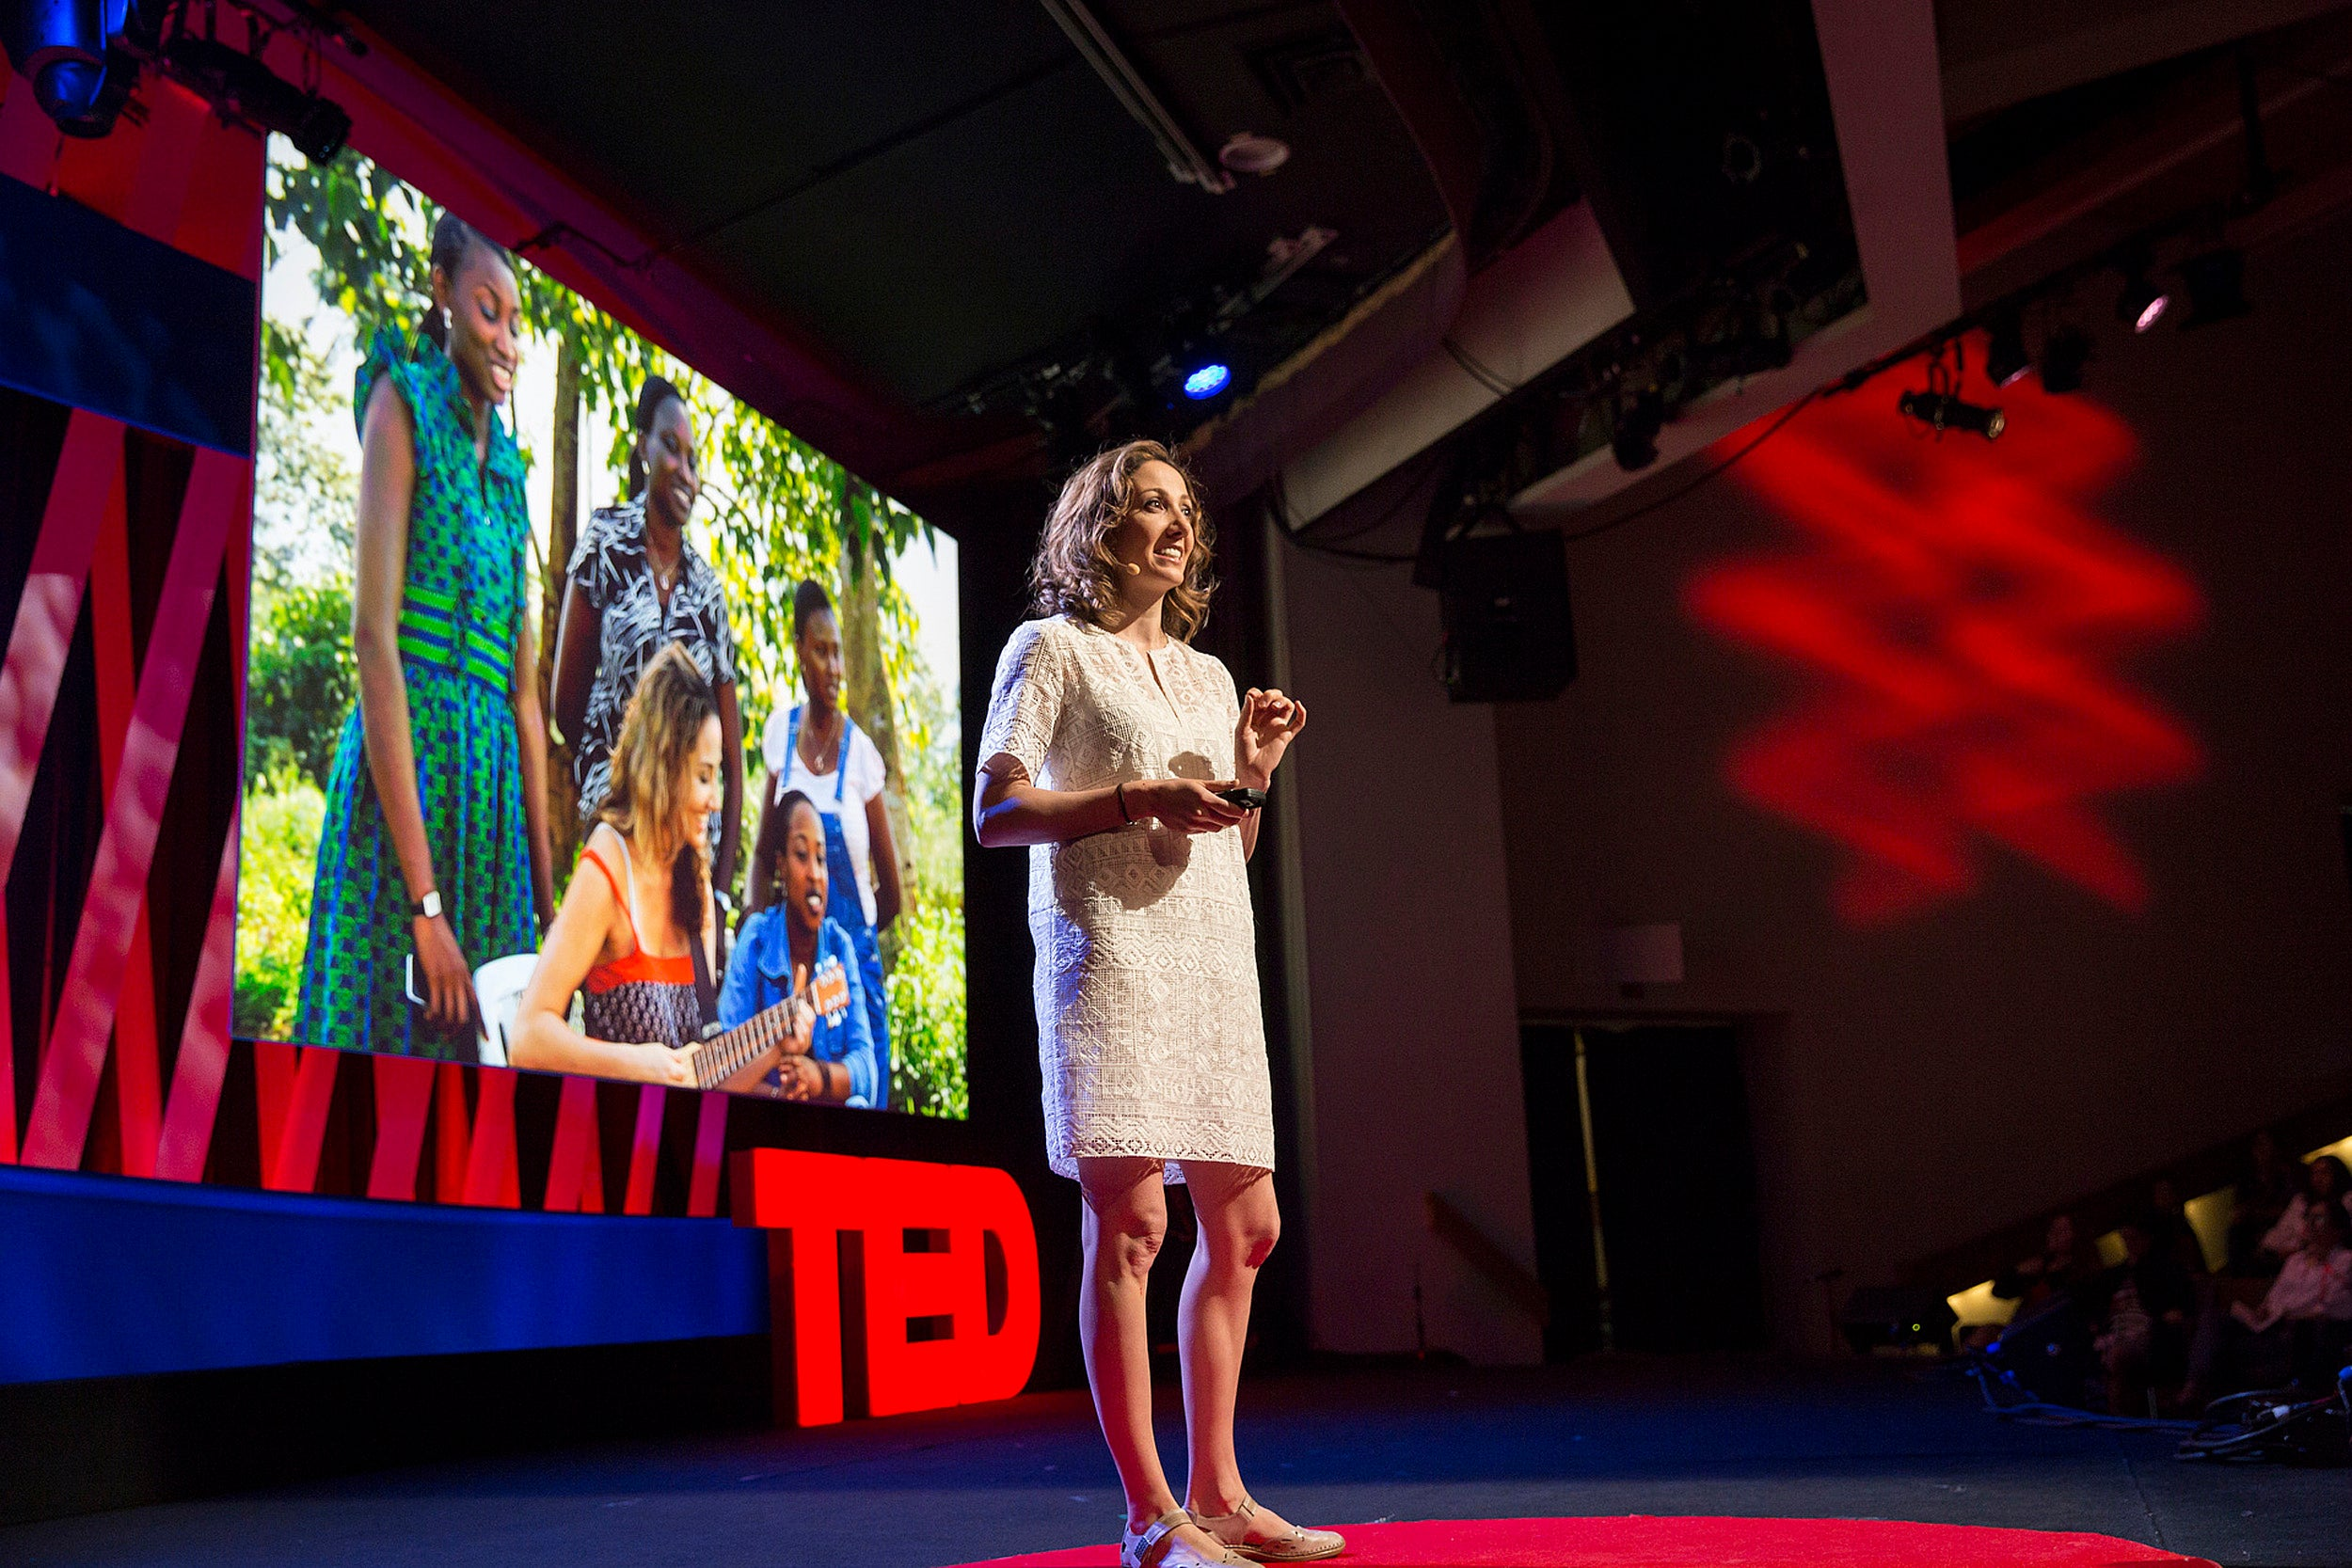 Pardis Sabeti speaks at TEDWomen.